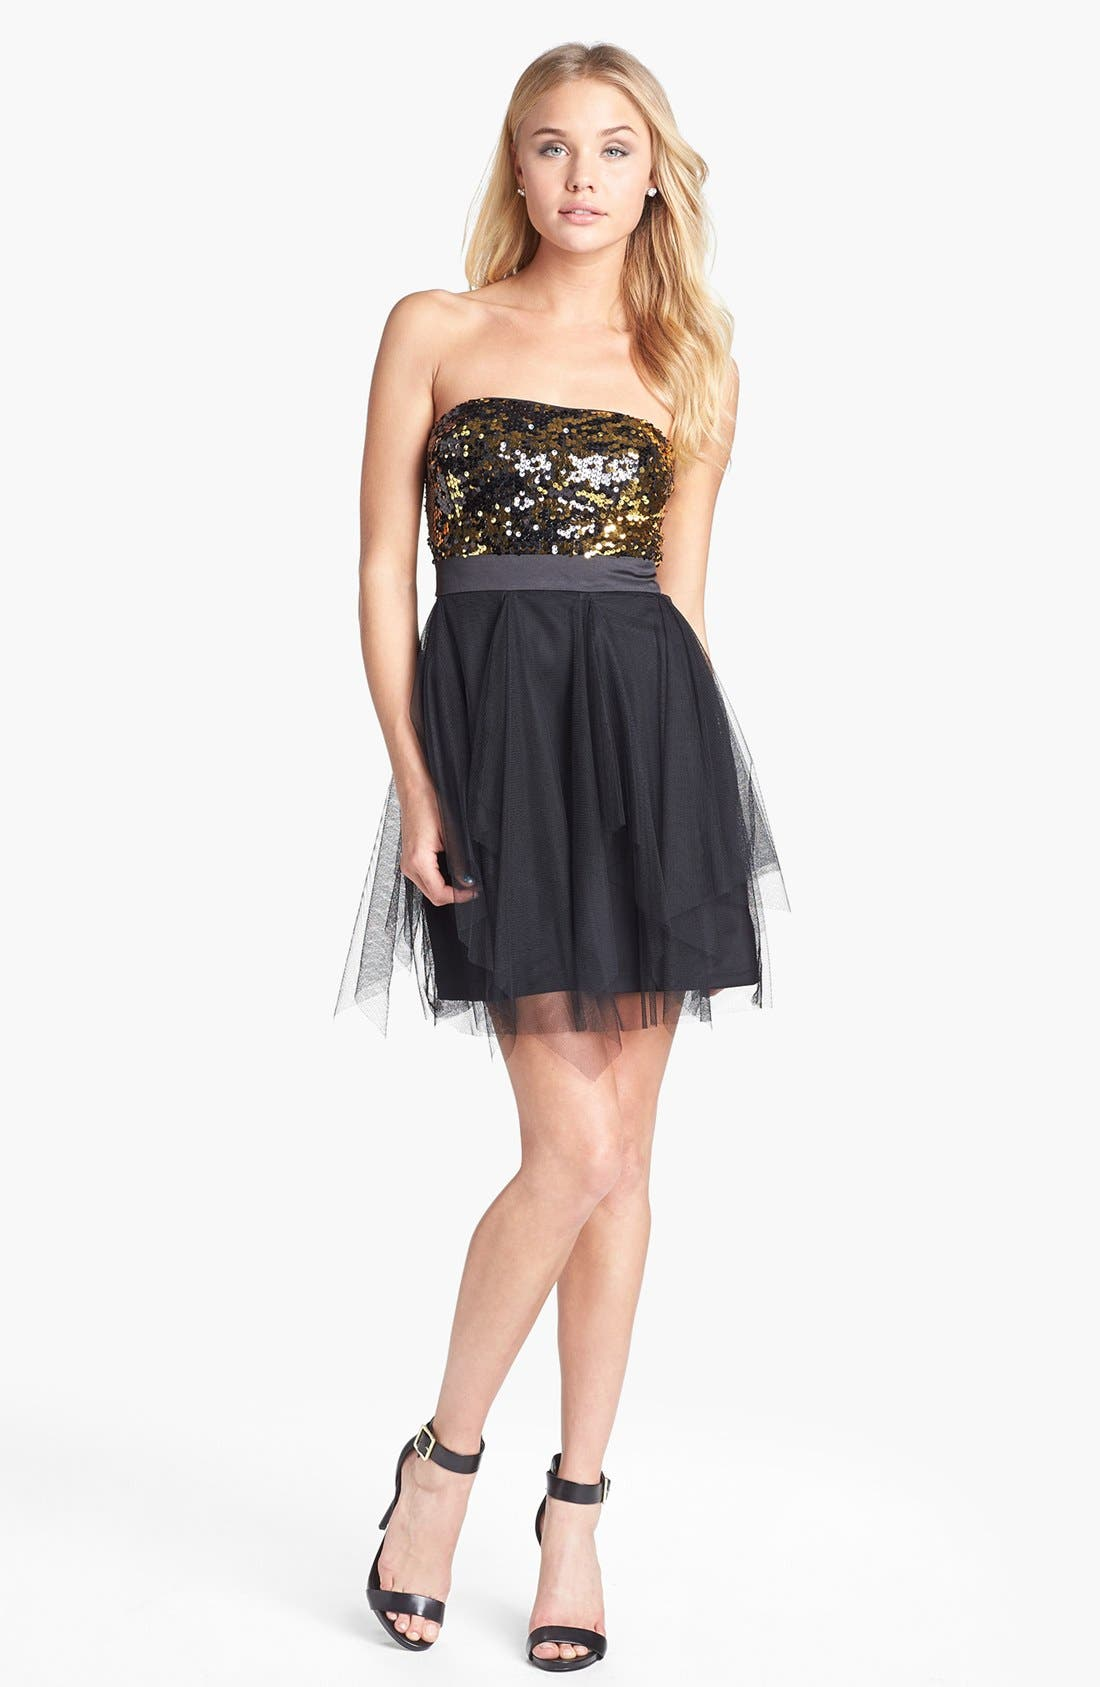 Alternate Image 1 Selected - Hailey Logan Strapless Sequin & Tulle Dress (Juniors) (Online Exclusive)